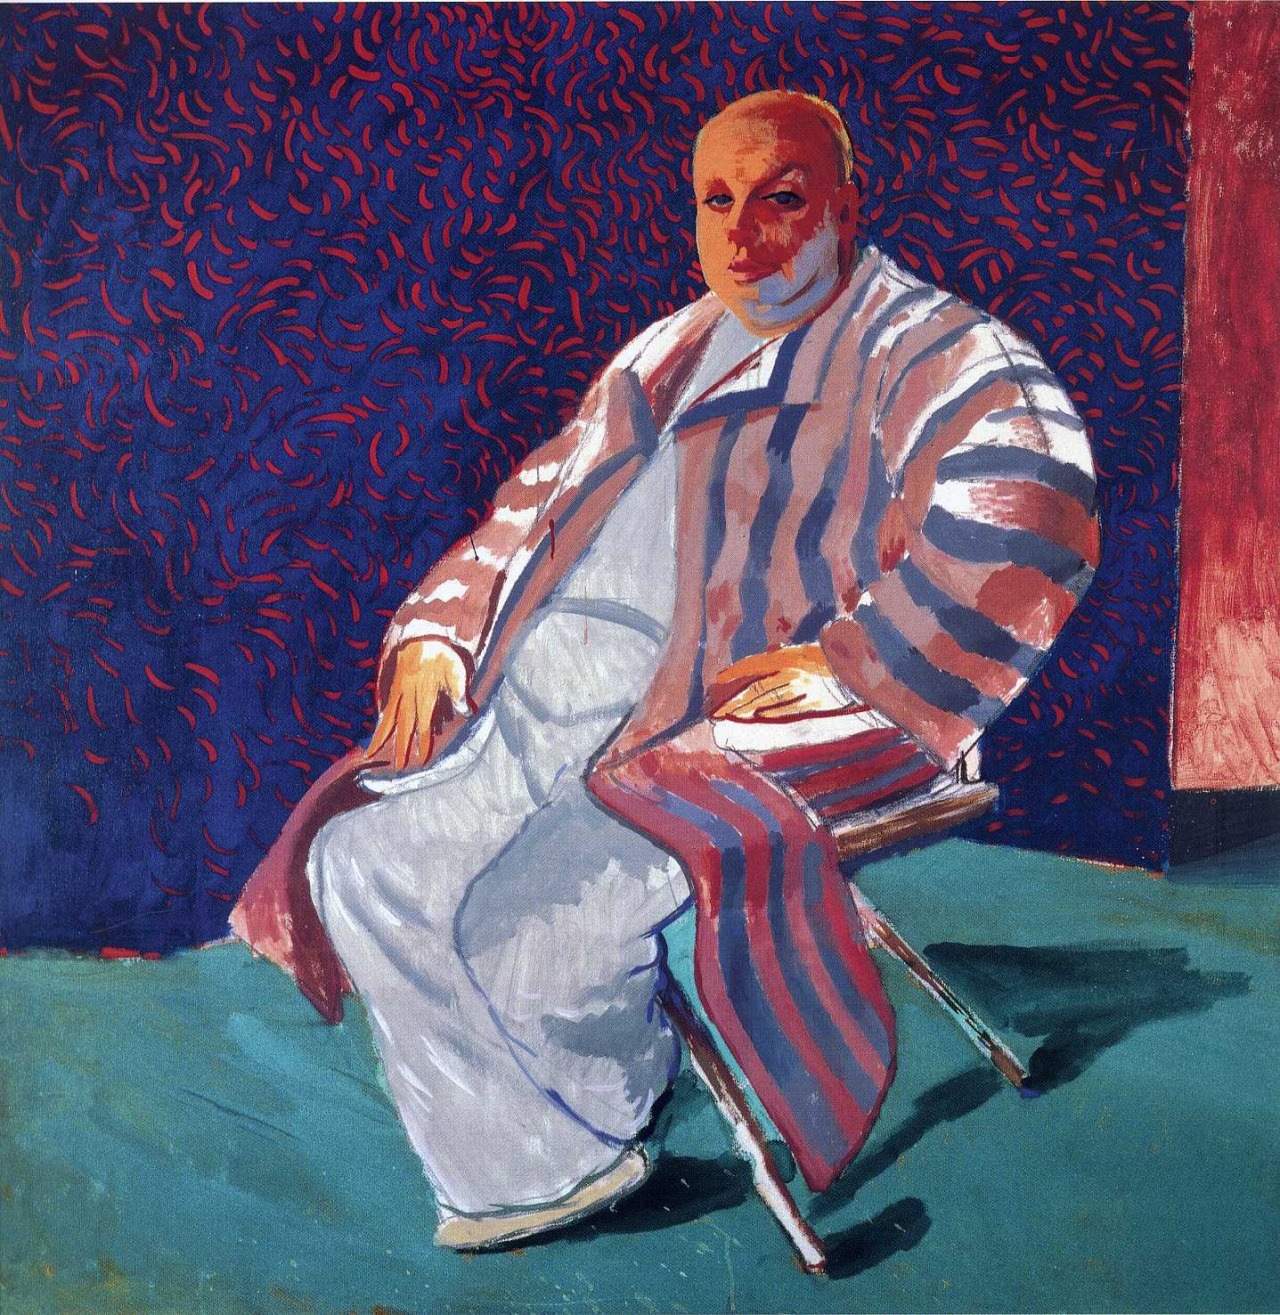 David Hockney, Divine, 1979 acrylic on canvas, 60 × 60 inches Download Image Visit Source @ didgiwidgiphotography.blogspot.ca